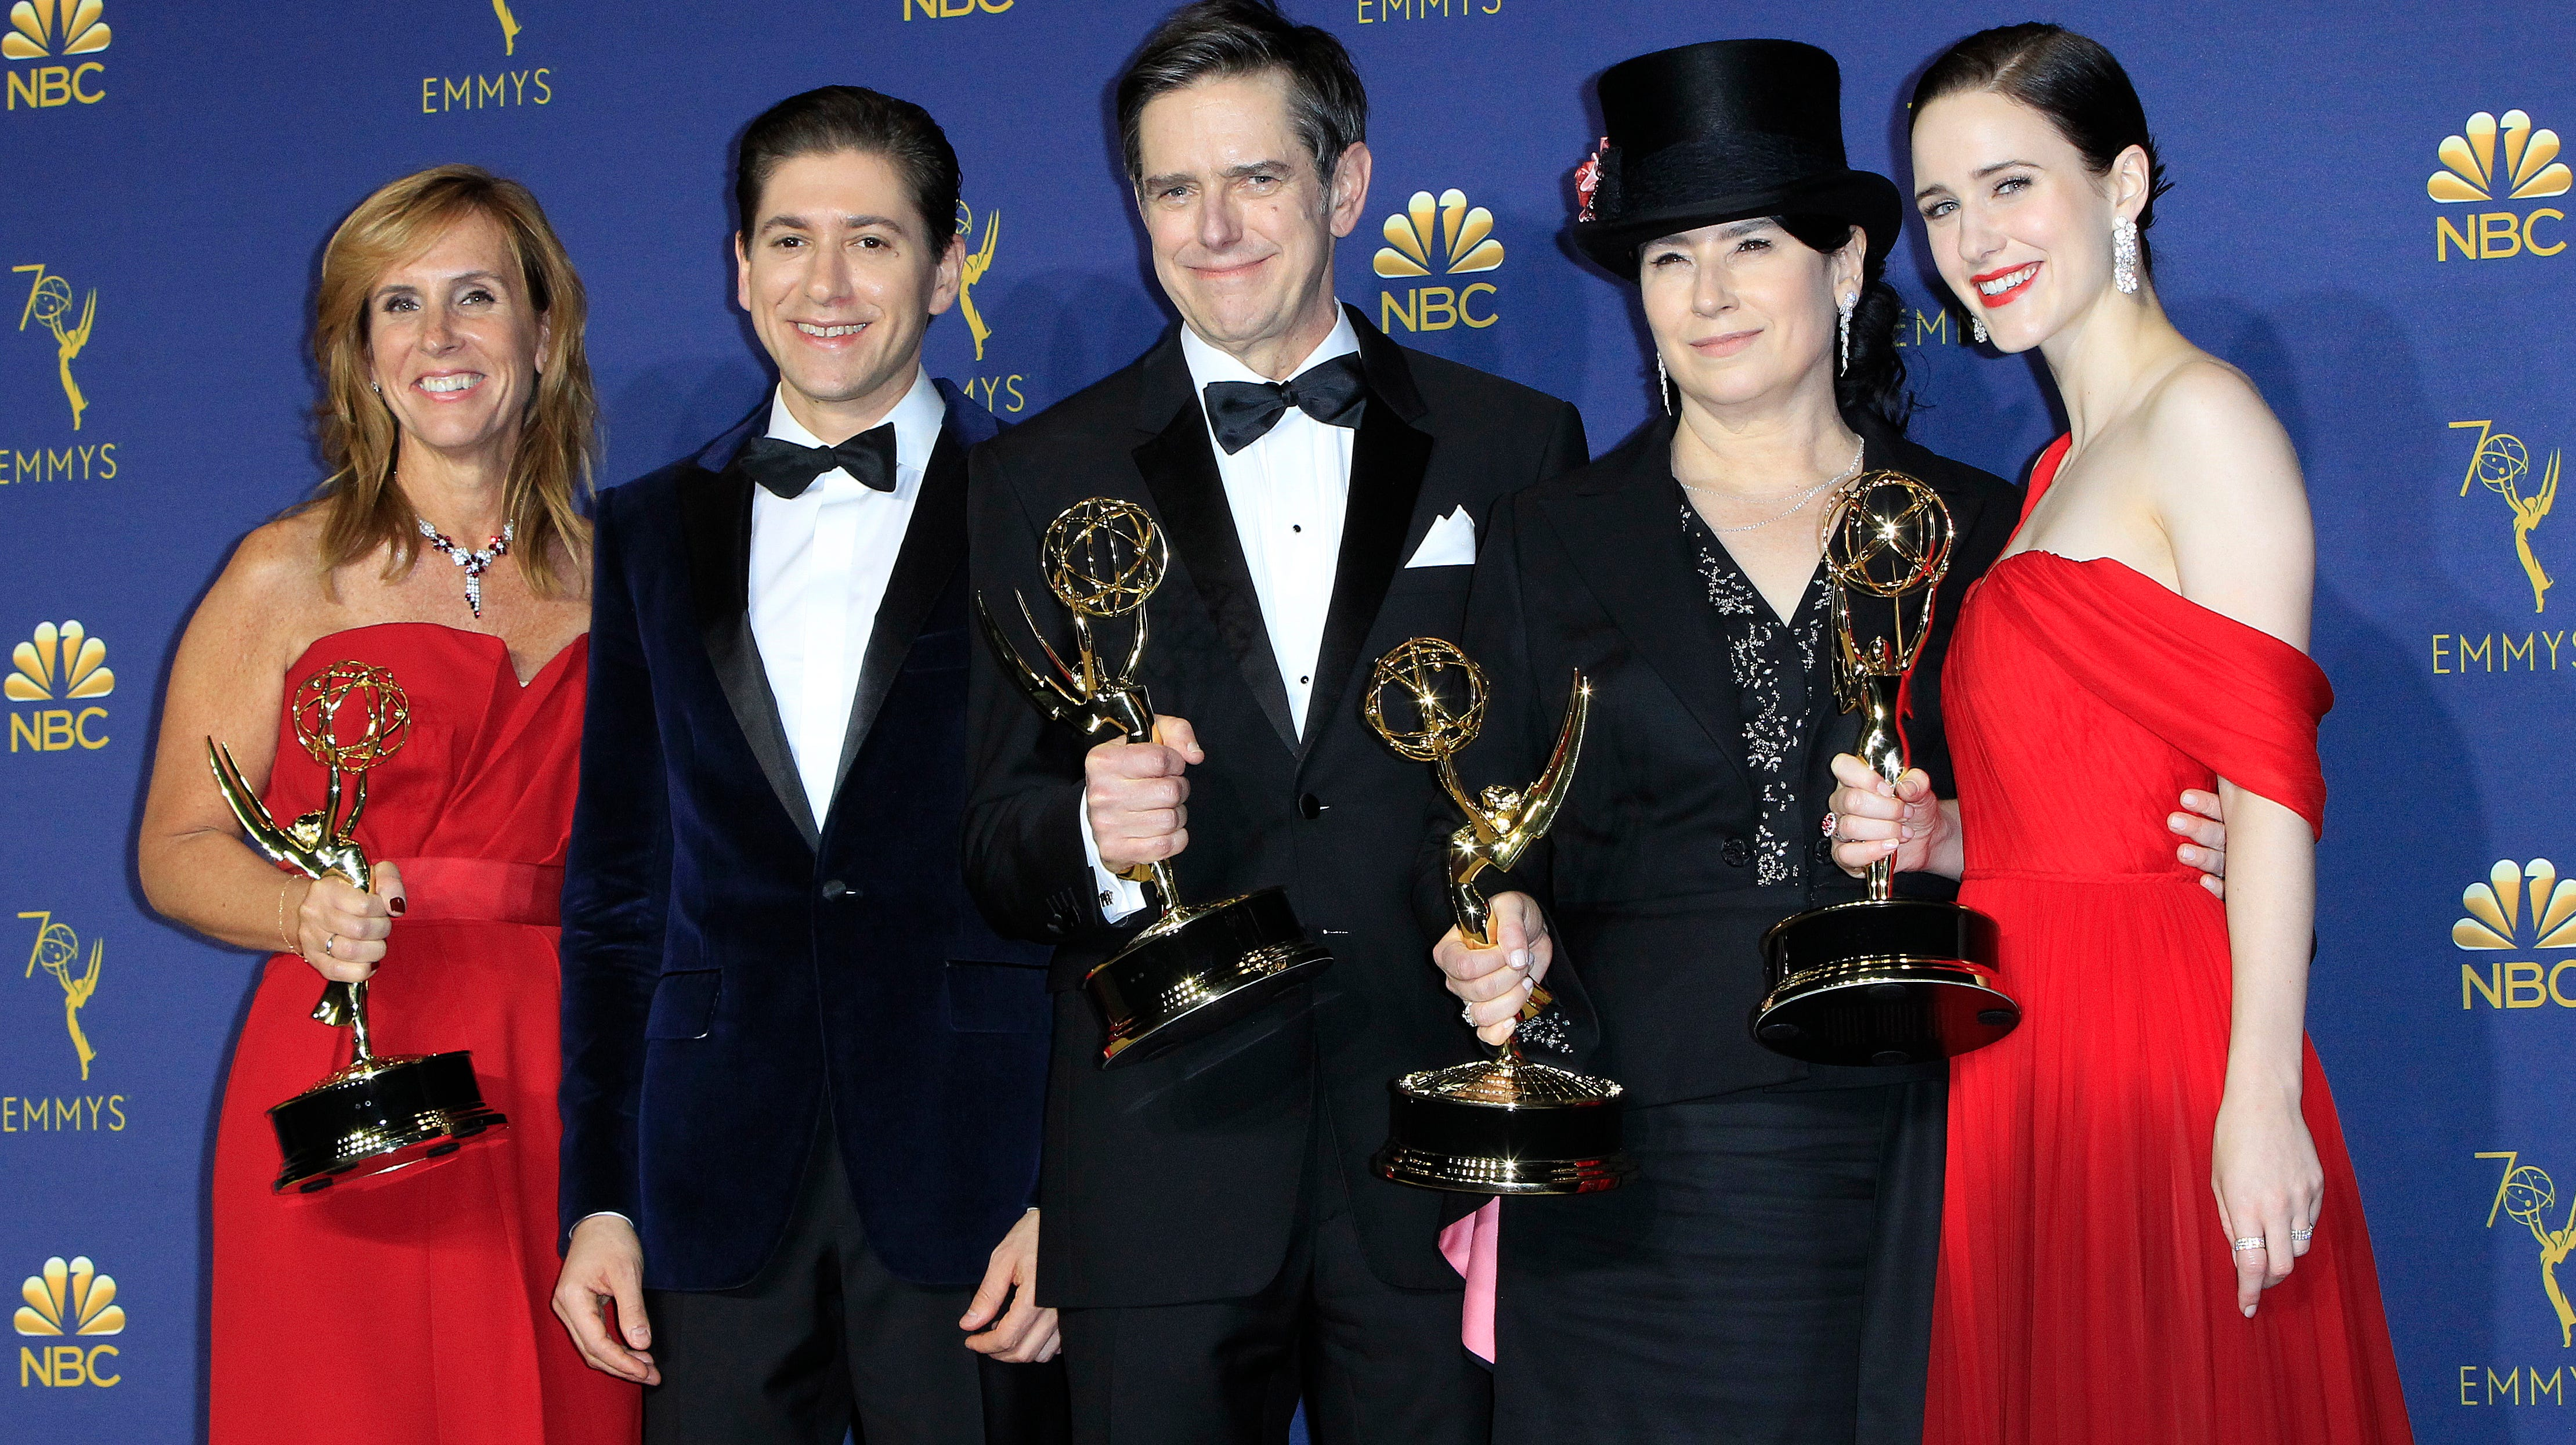 """The Marvelous Mrs Maisel"" cast hold the Emmy for Outstanding Comedy Series at the 70th Primetime Emmy Awards ceremony."